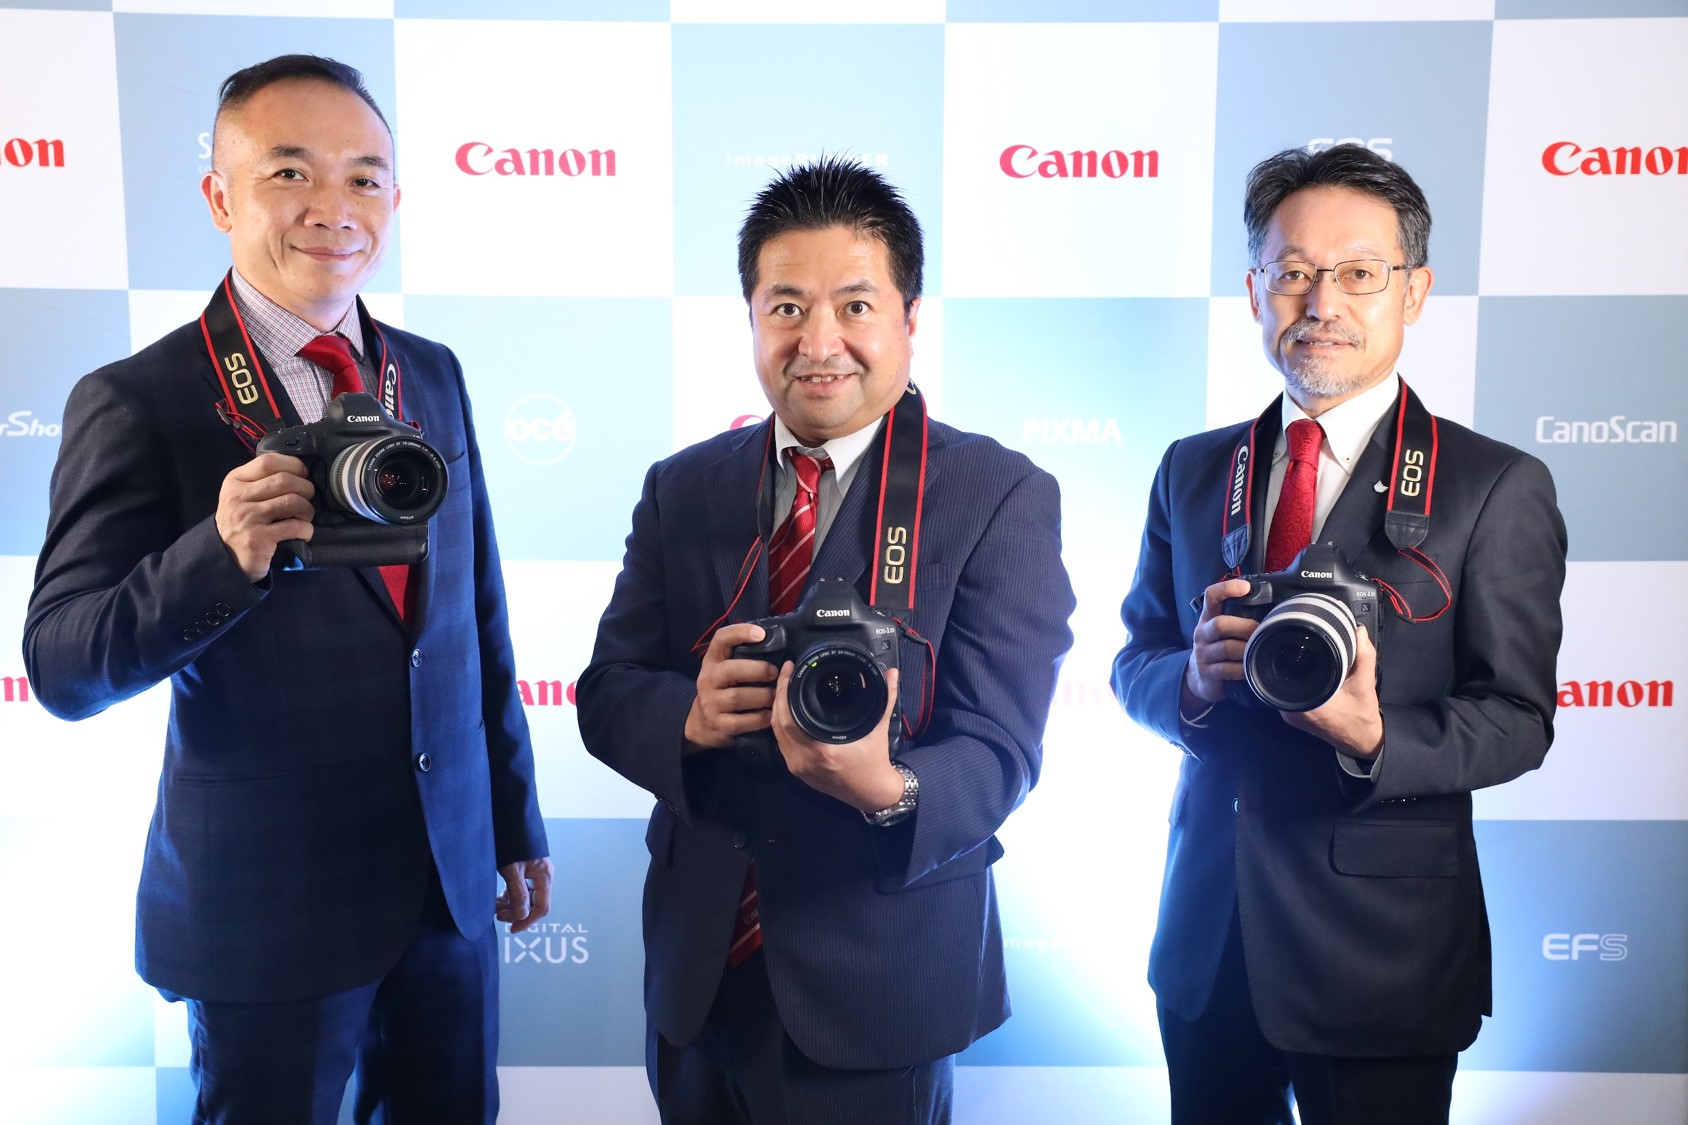 Canon's Full-frame DSLR EOS 1D X Mark III Delivers  Uncompromised Photo and Video at Impressive Speed